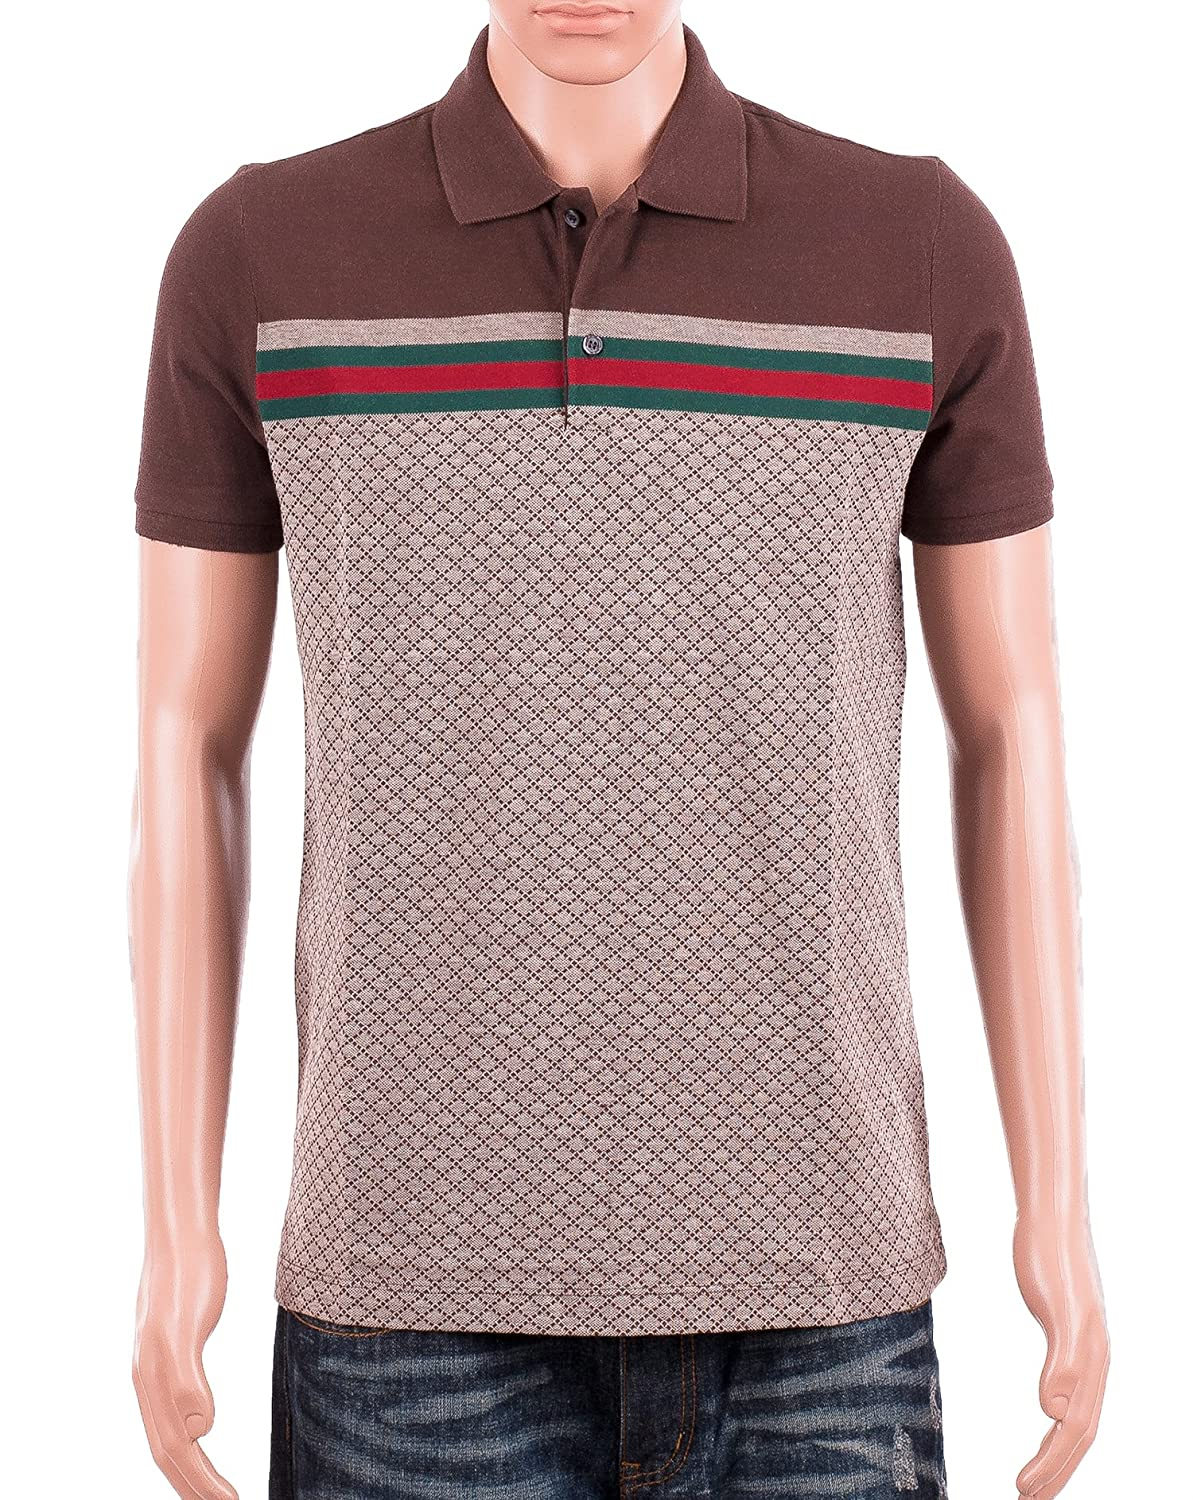 59256ba07 Amazon.com  Gucci Mens Polo Shirt Brown with Diamante Print and Front  Stripe Signature  Clothing